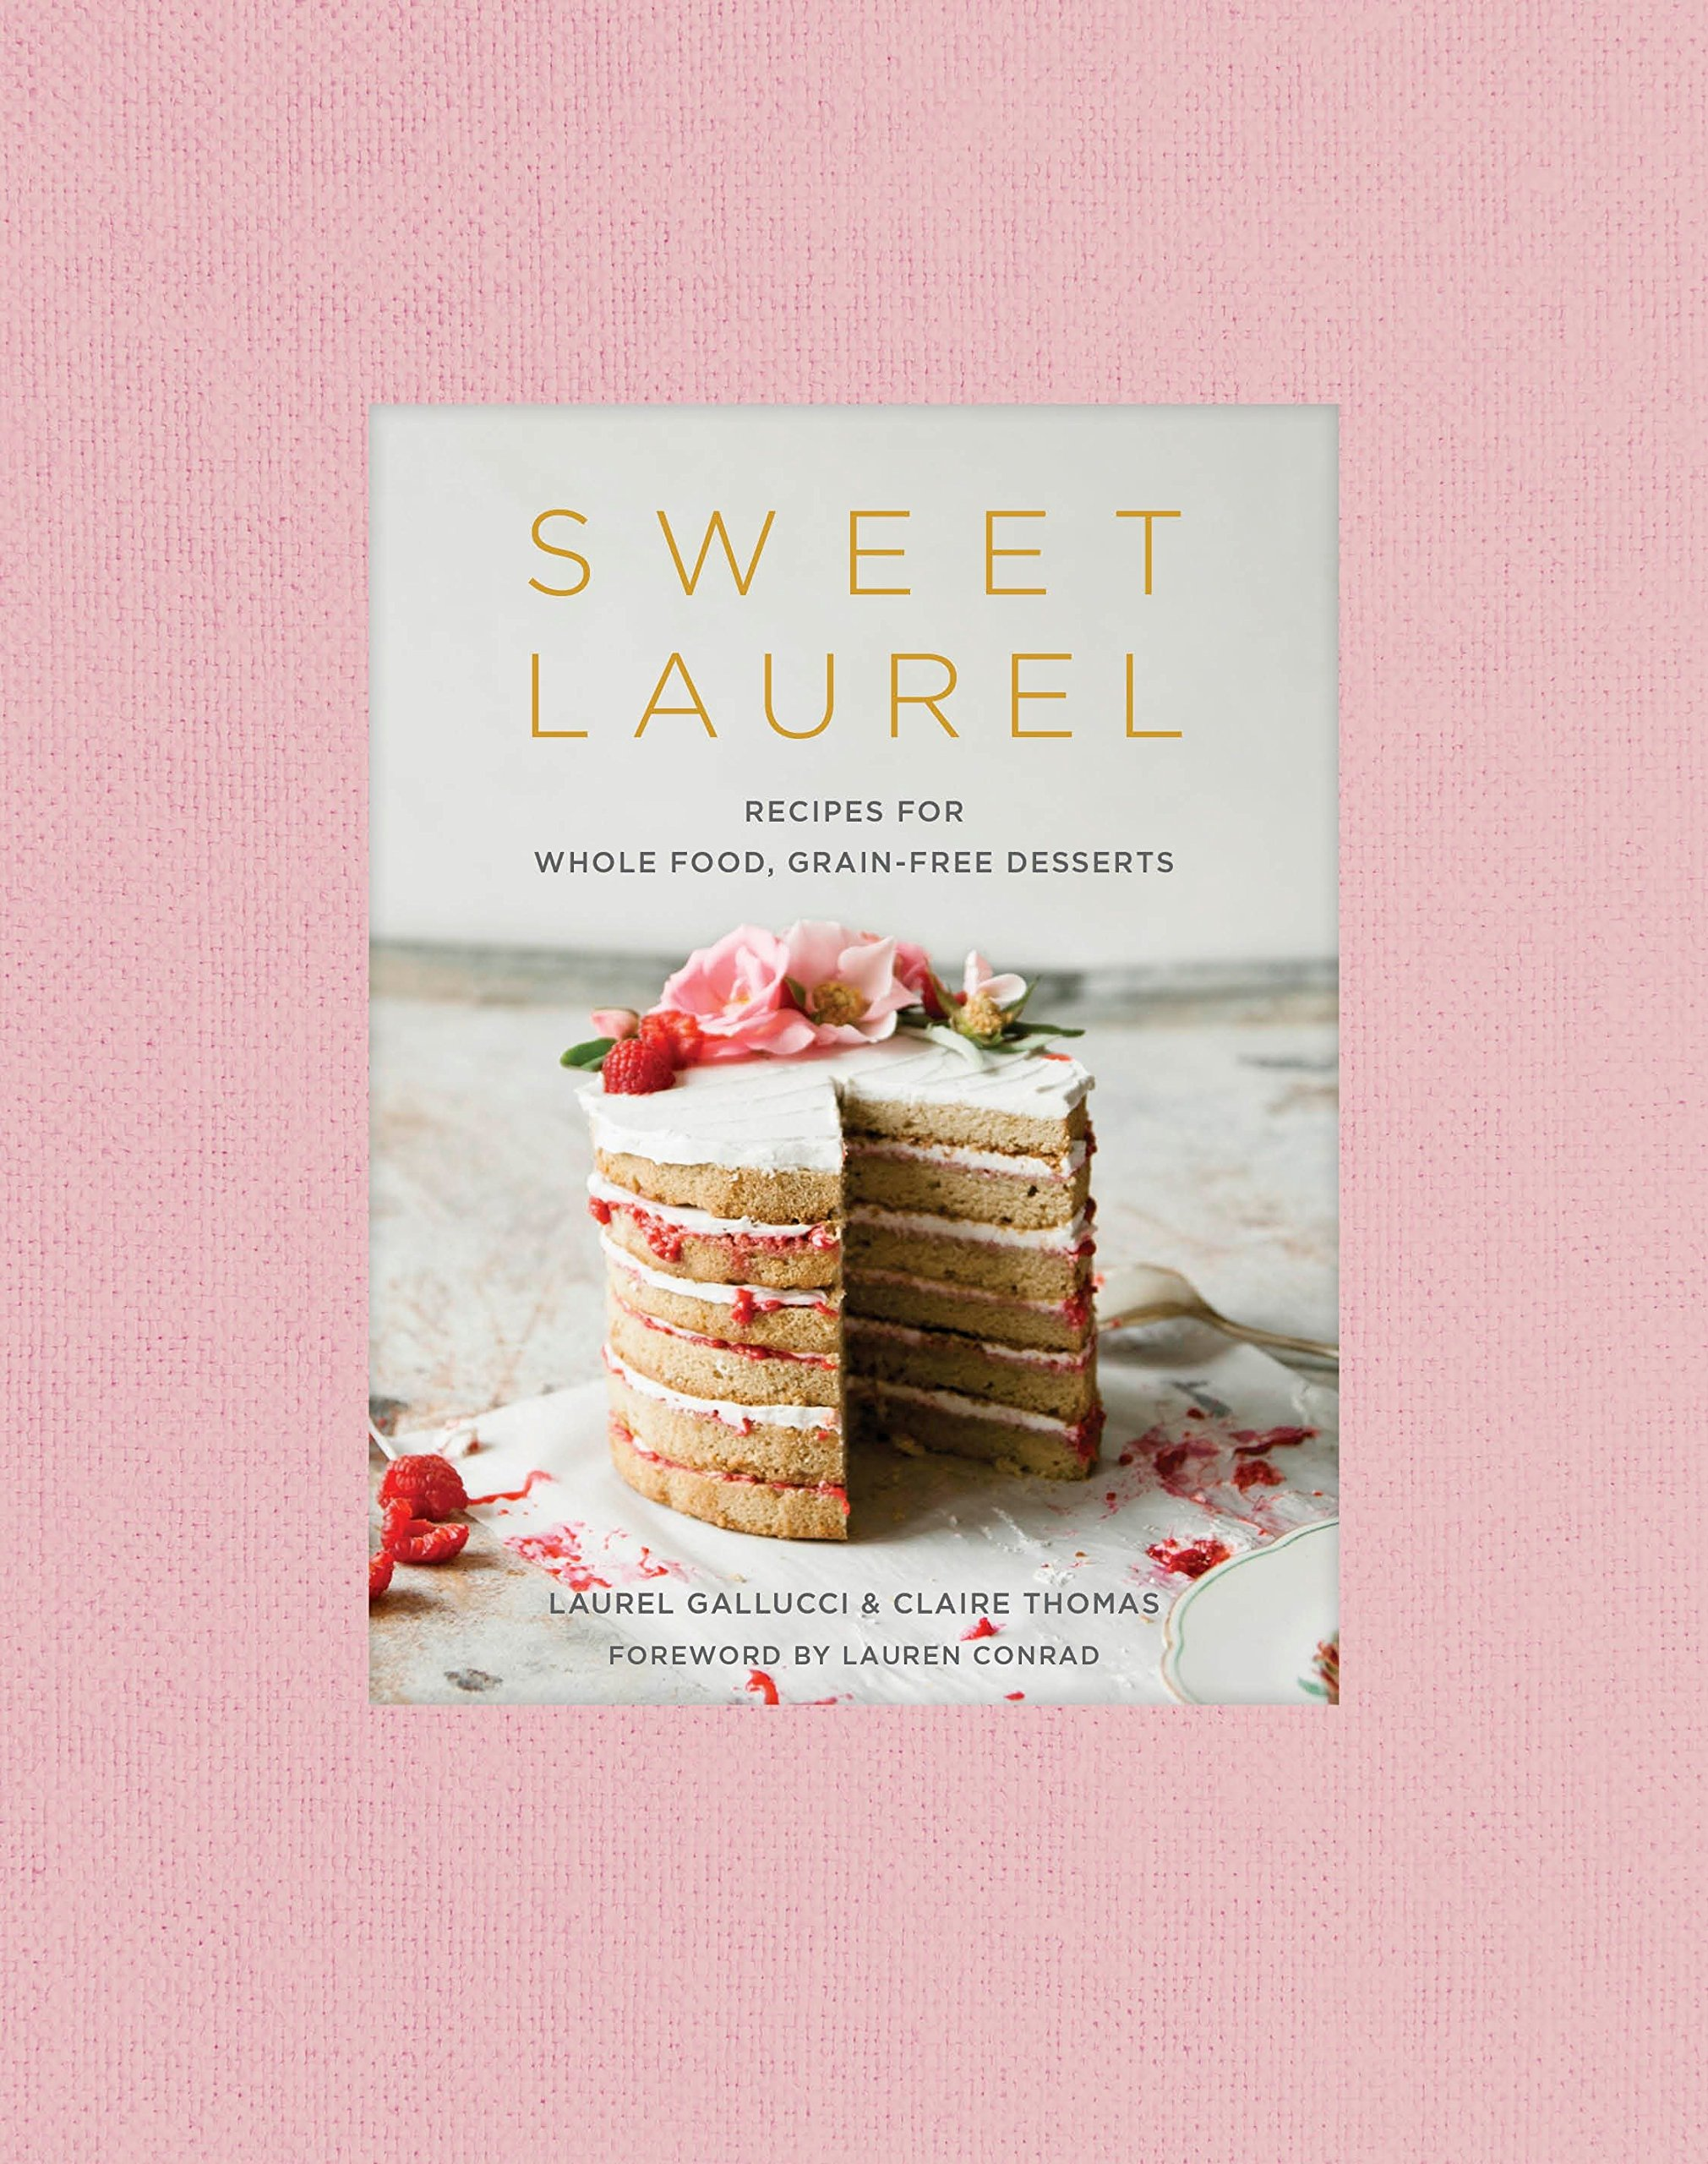 Image OfSweet Laurel: Recipes For Whole Food, Grain-Free Desserts: A Baking Book